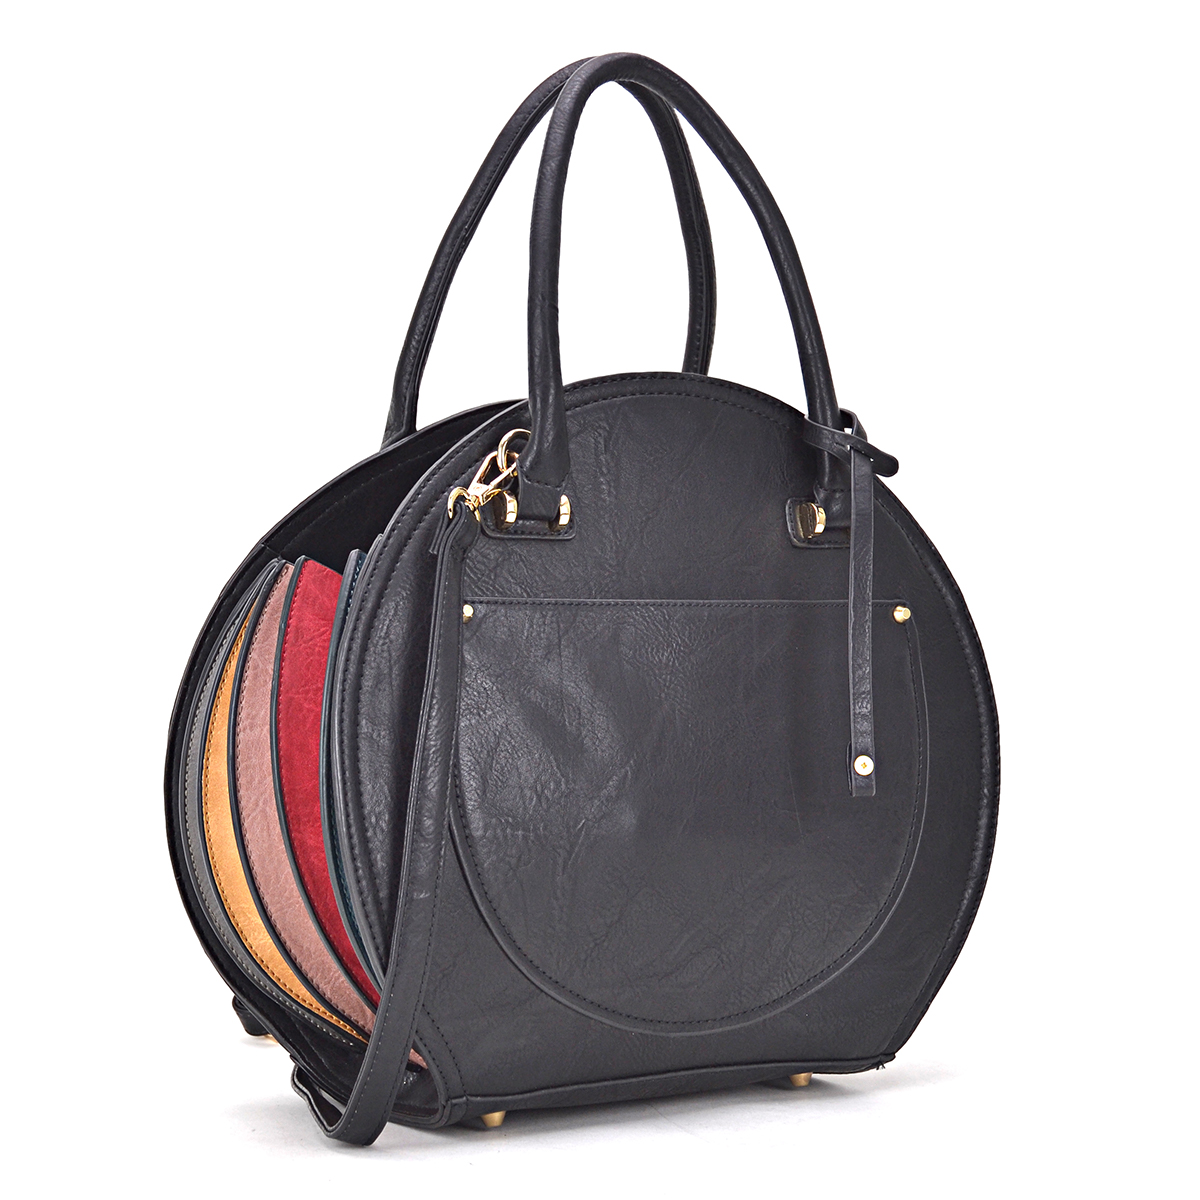 Leather Oval shaped Satchel with Fanfold multi color edge design on both sides